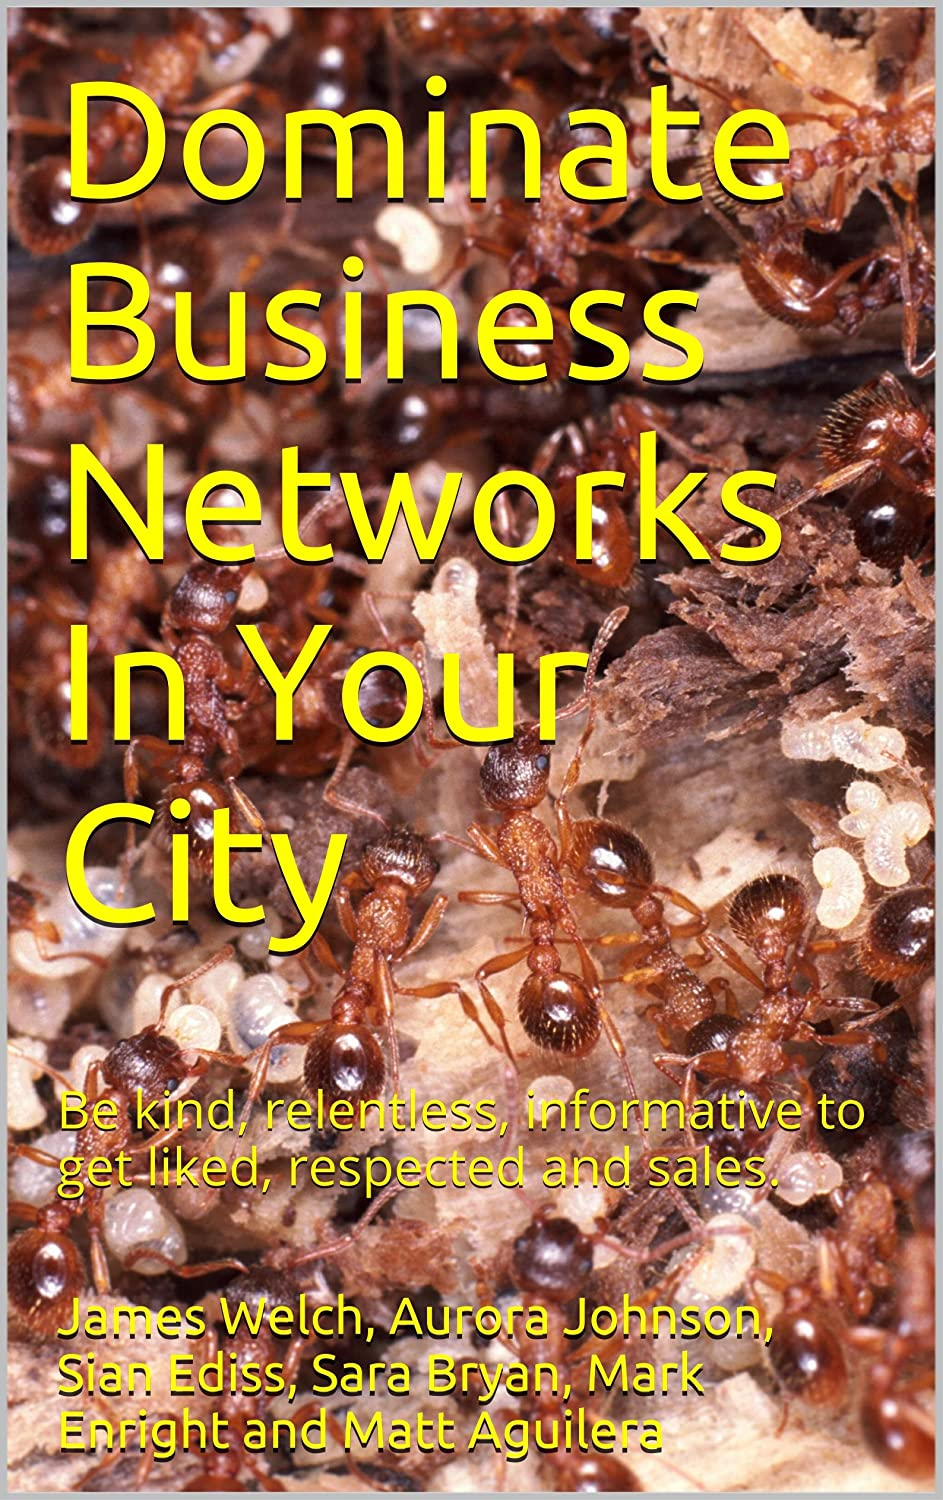 Dominate Business Networks in Your City Kindle Book